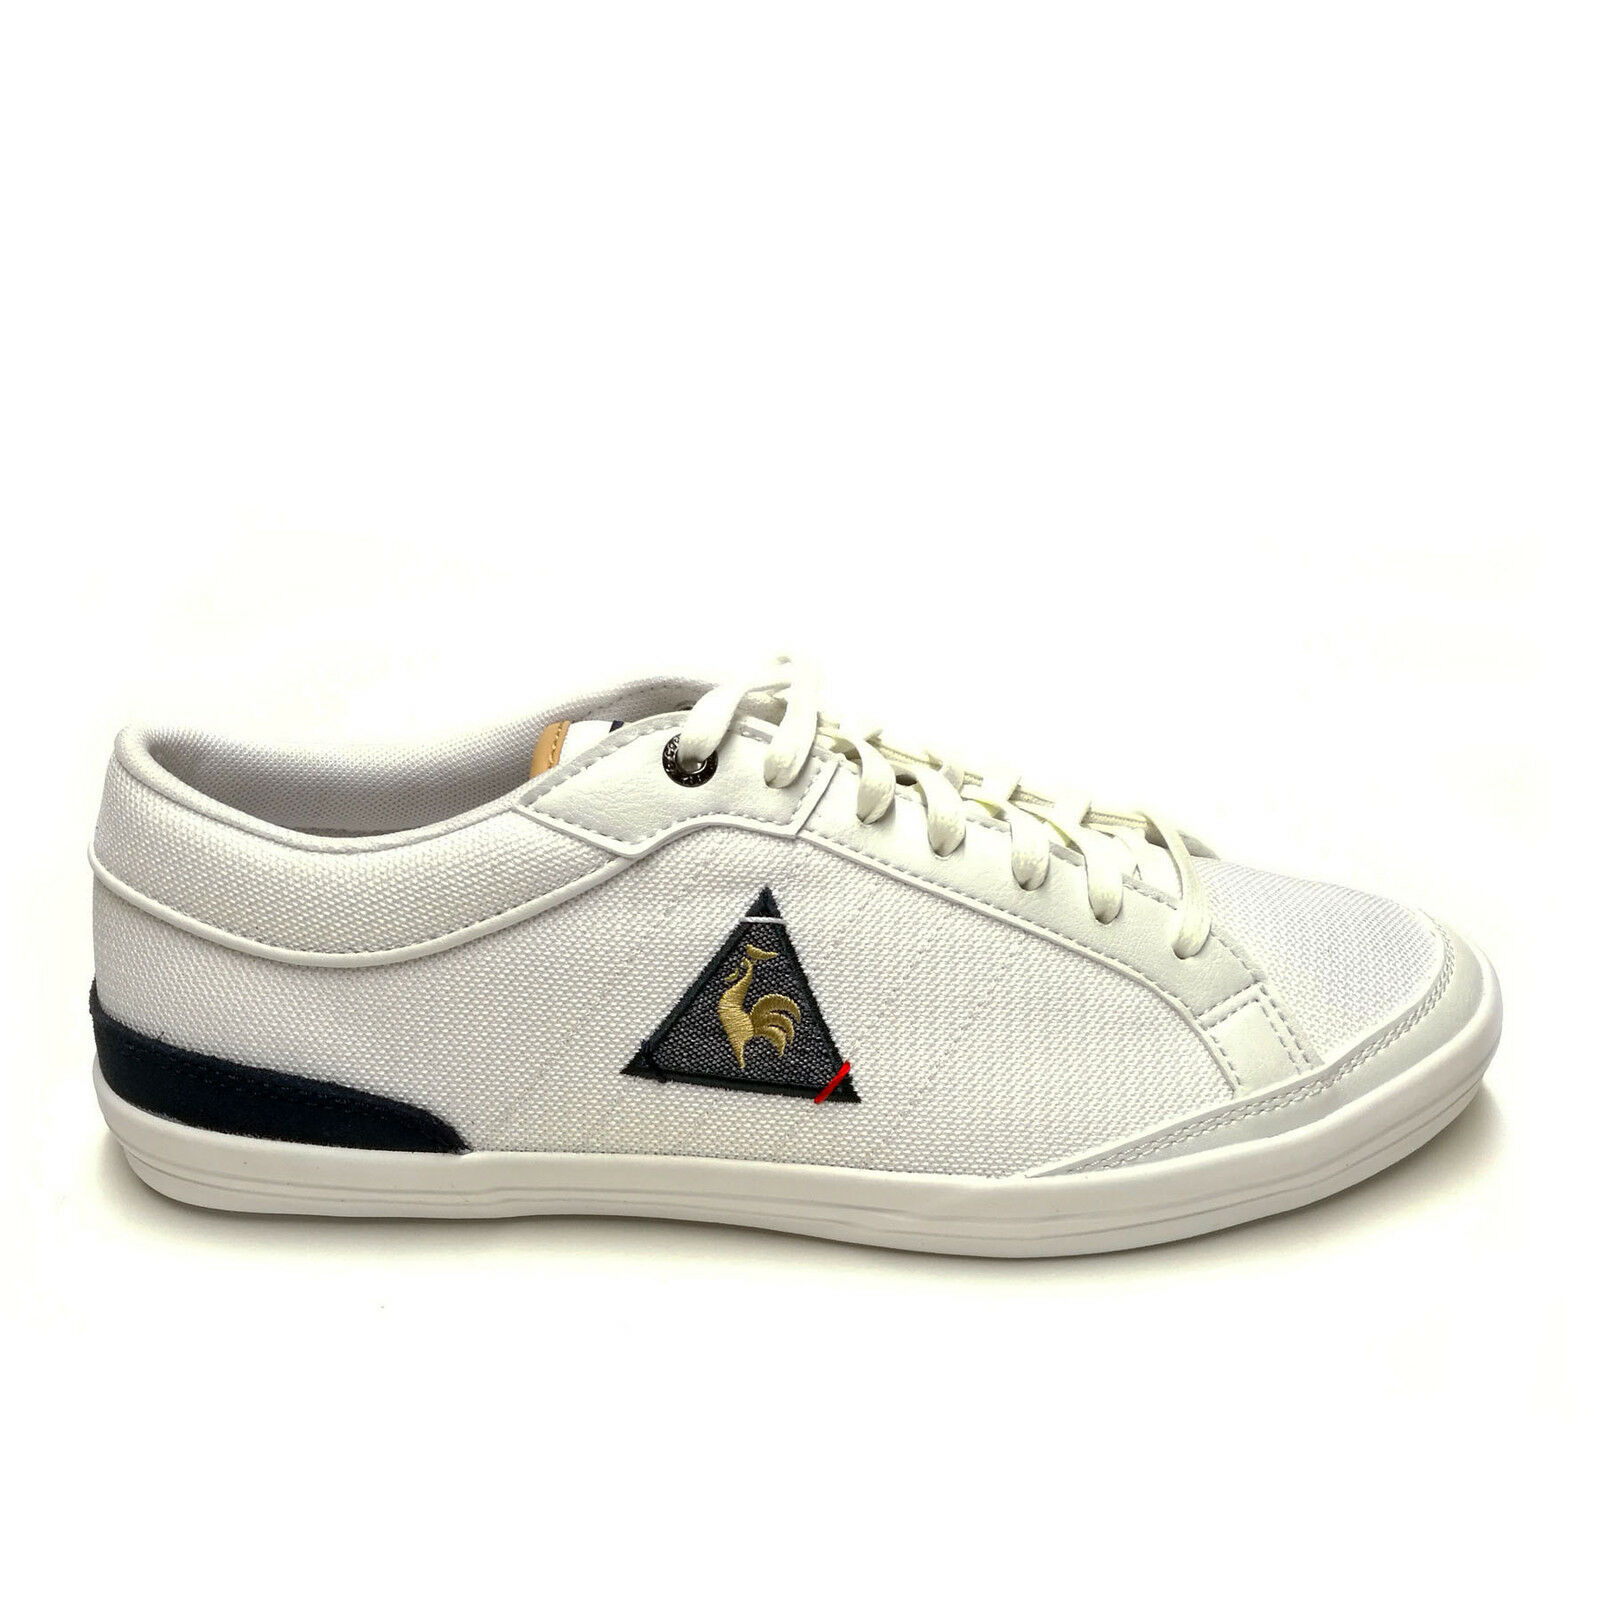 Scarpe casual da uomo Shoes Le Coq Sportif Feretcraft Nylon 1710095 Sneakers Leather Man Optical White